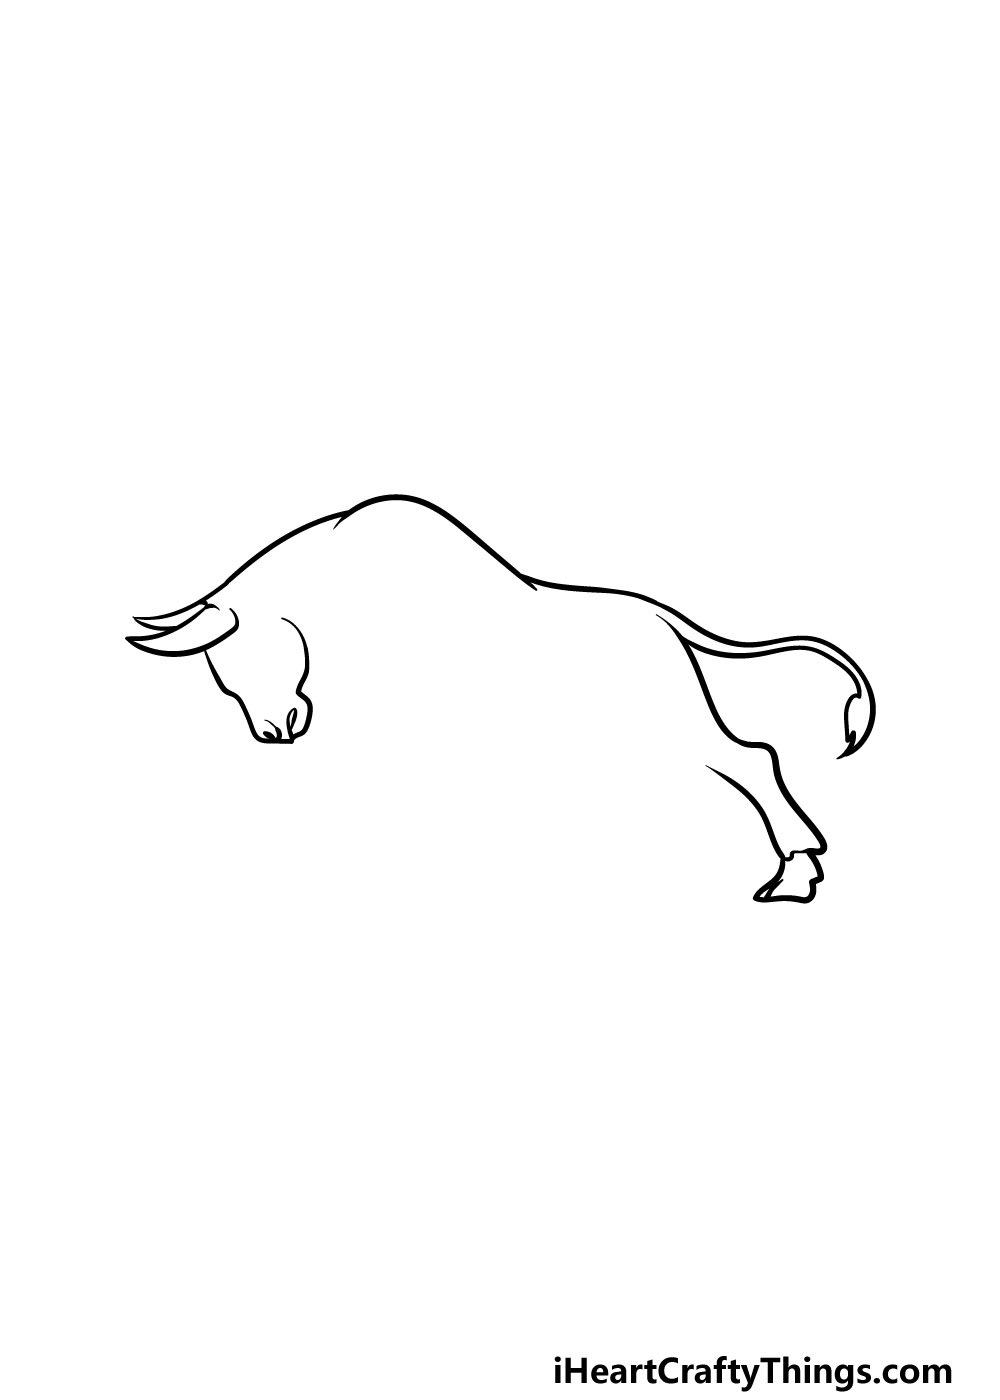 drawing a bull step 2